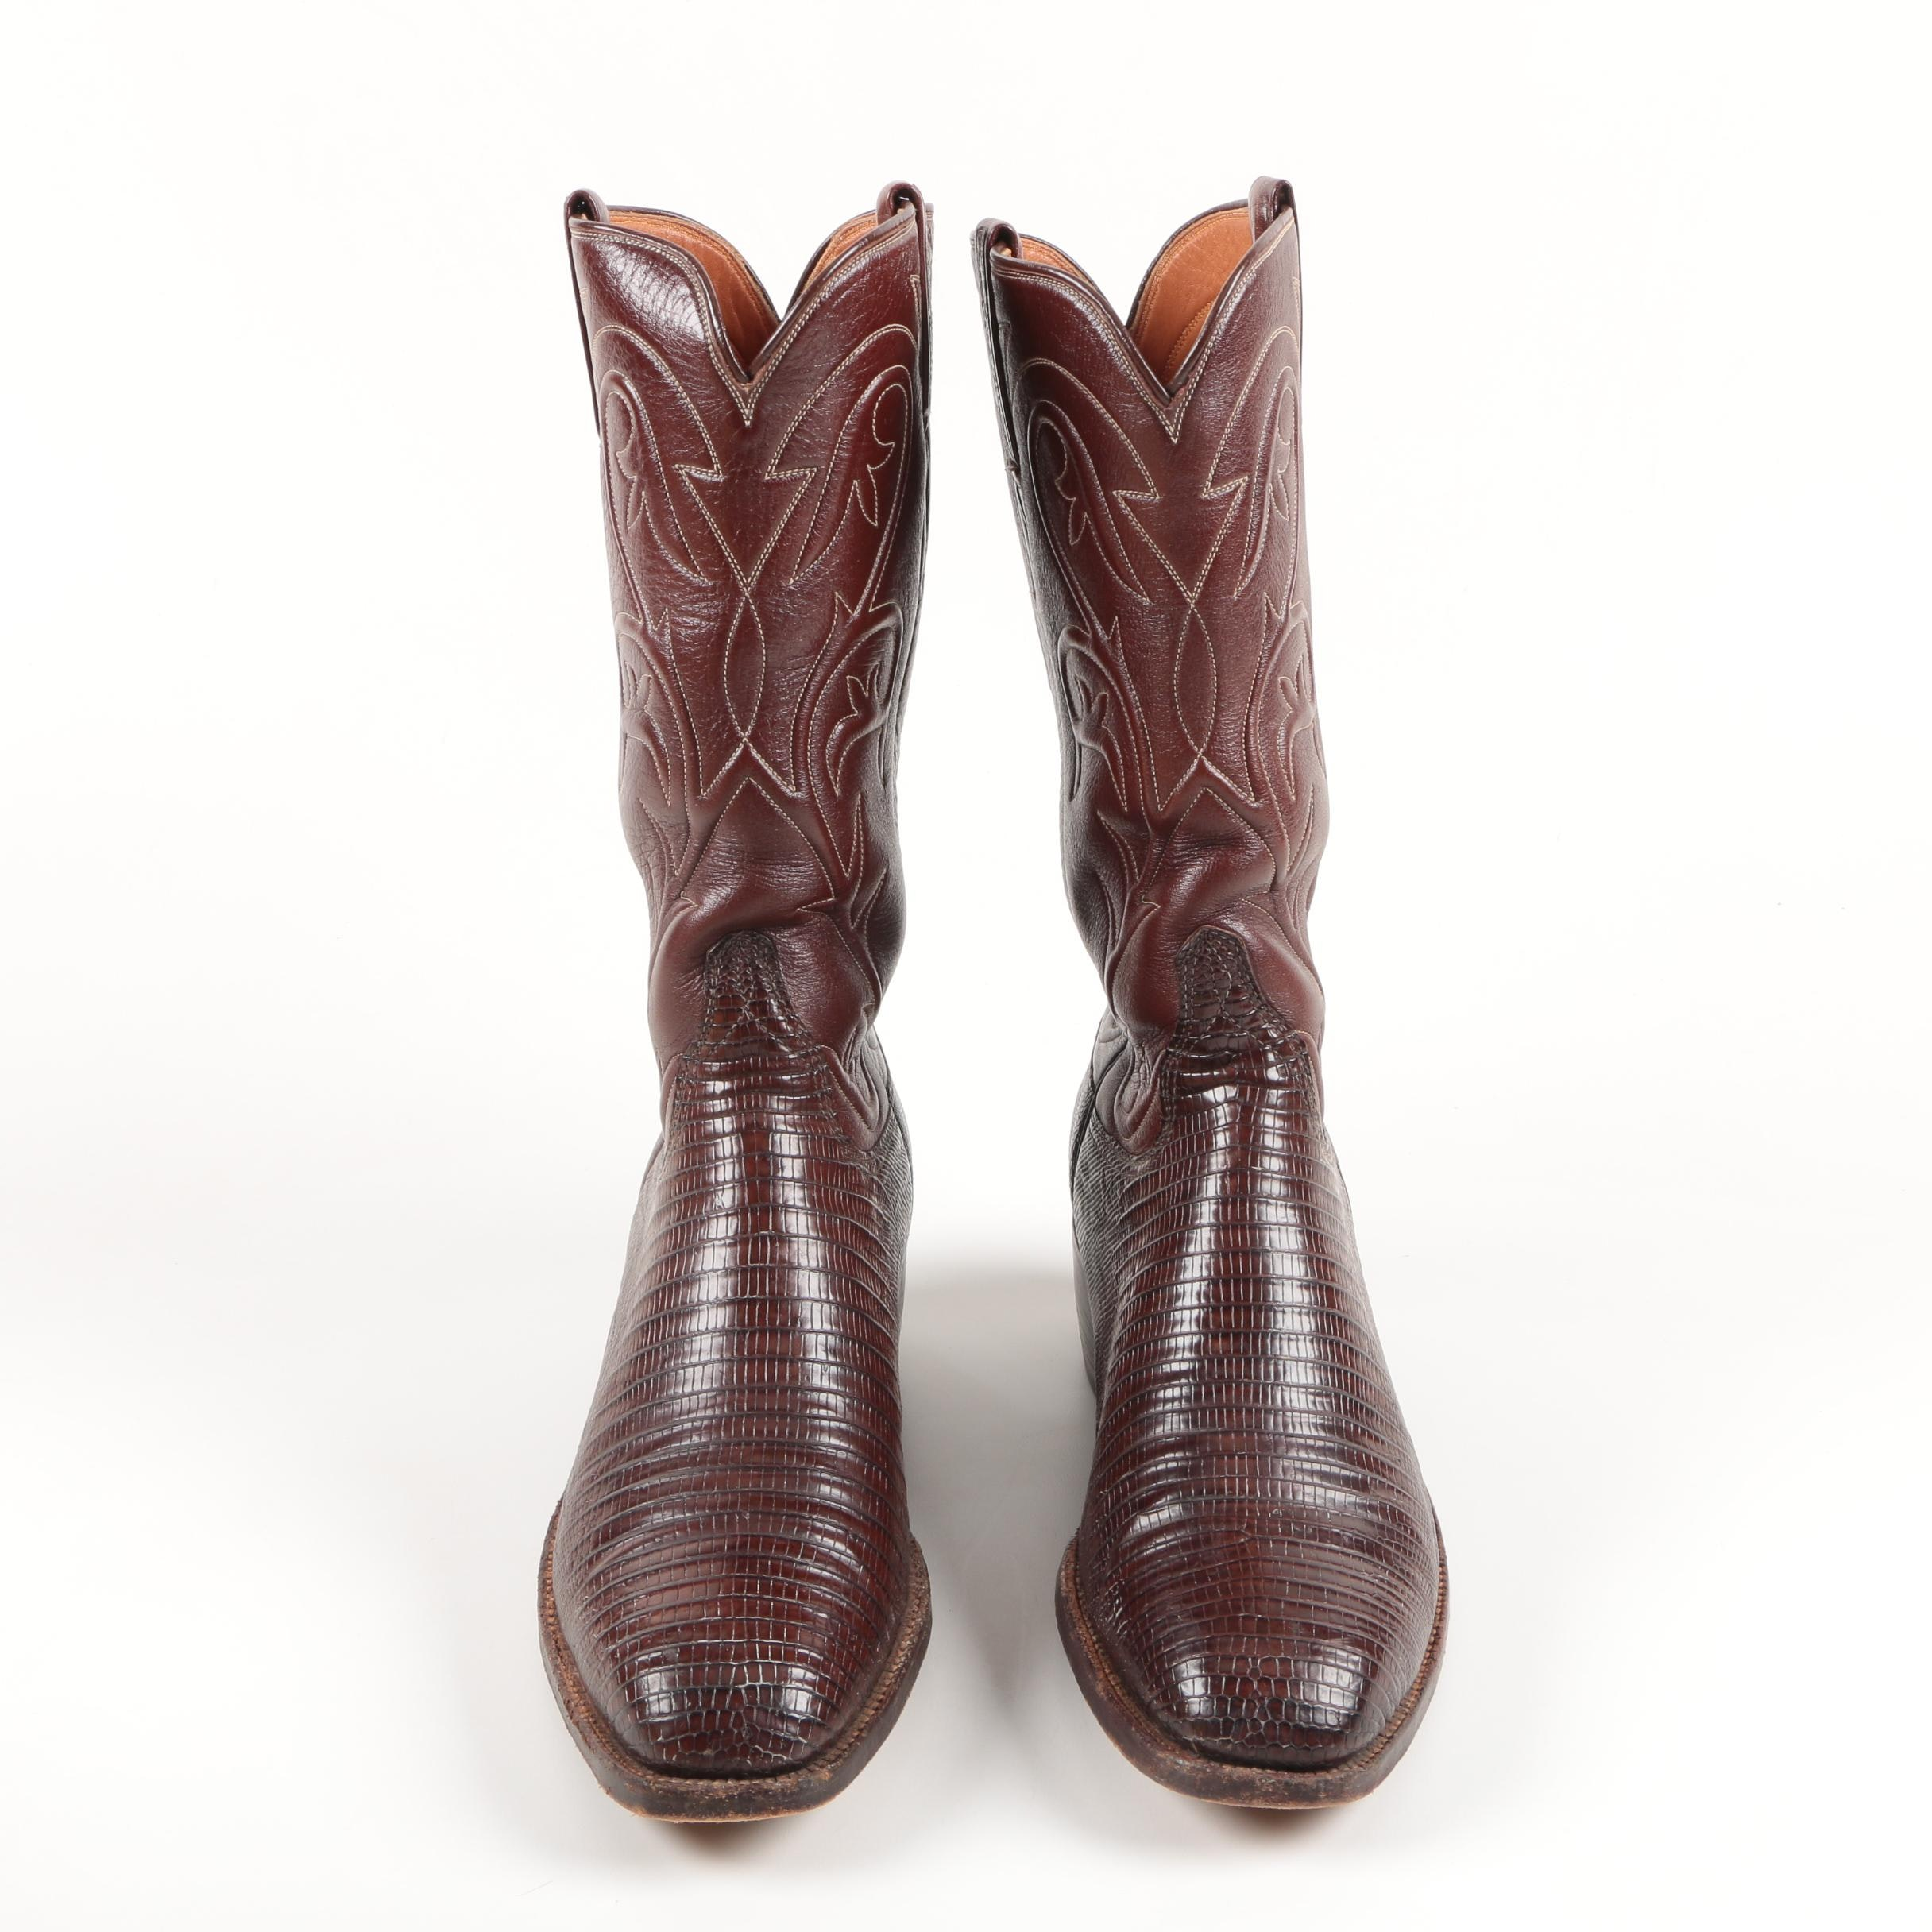 Luchese Chocolate Lizard Boots